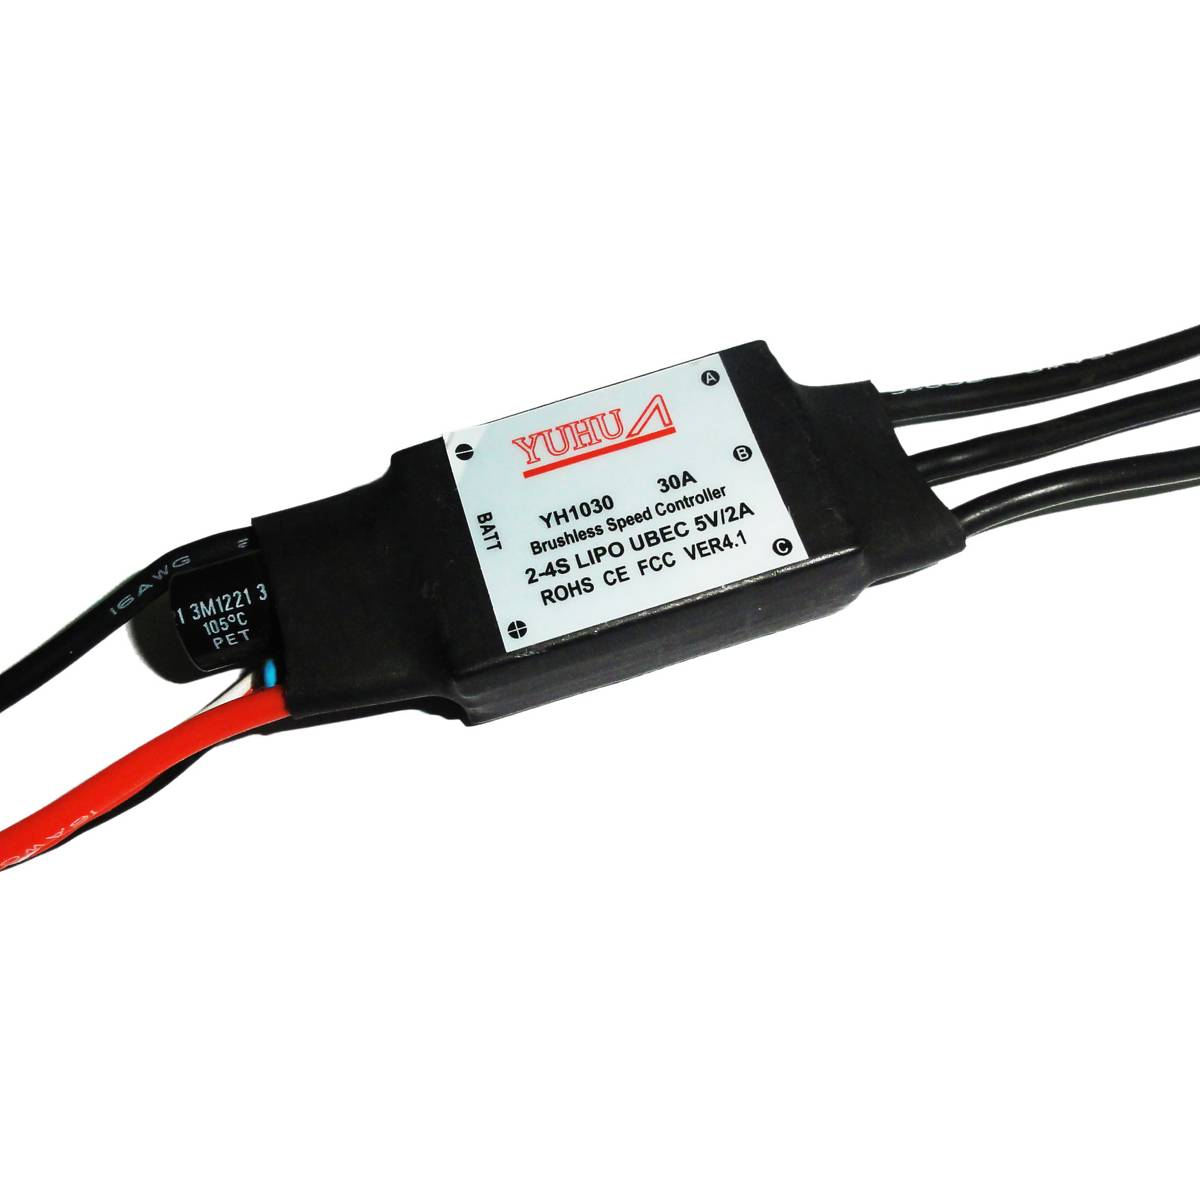 30A rc brushless programming esc for rc brushless motor for rc toys